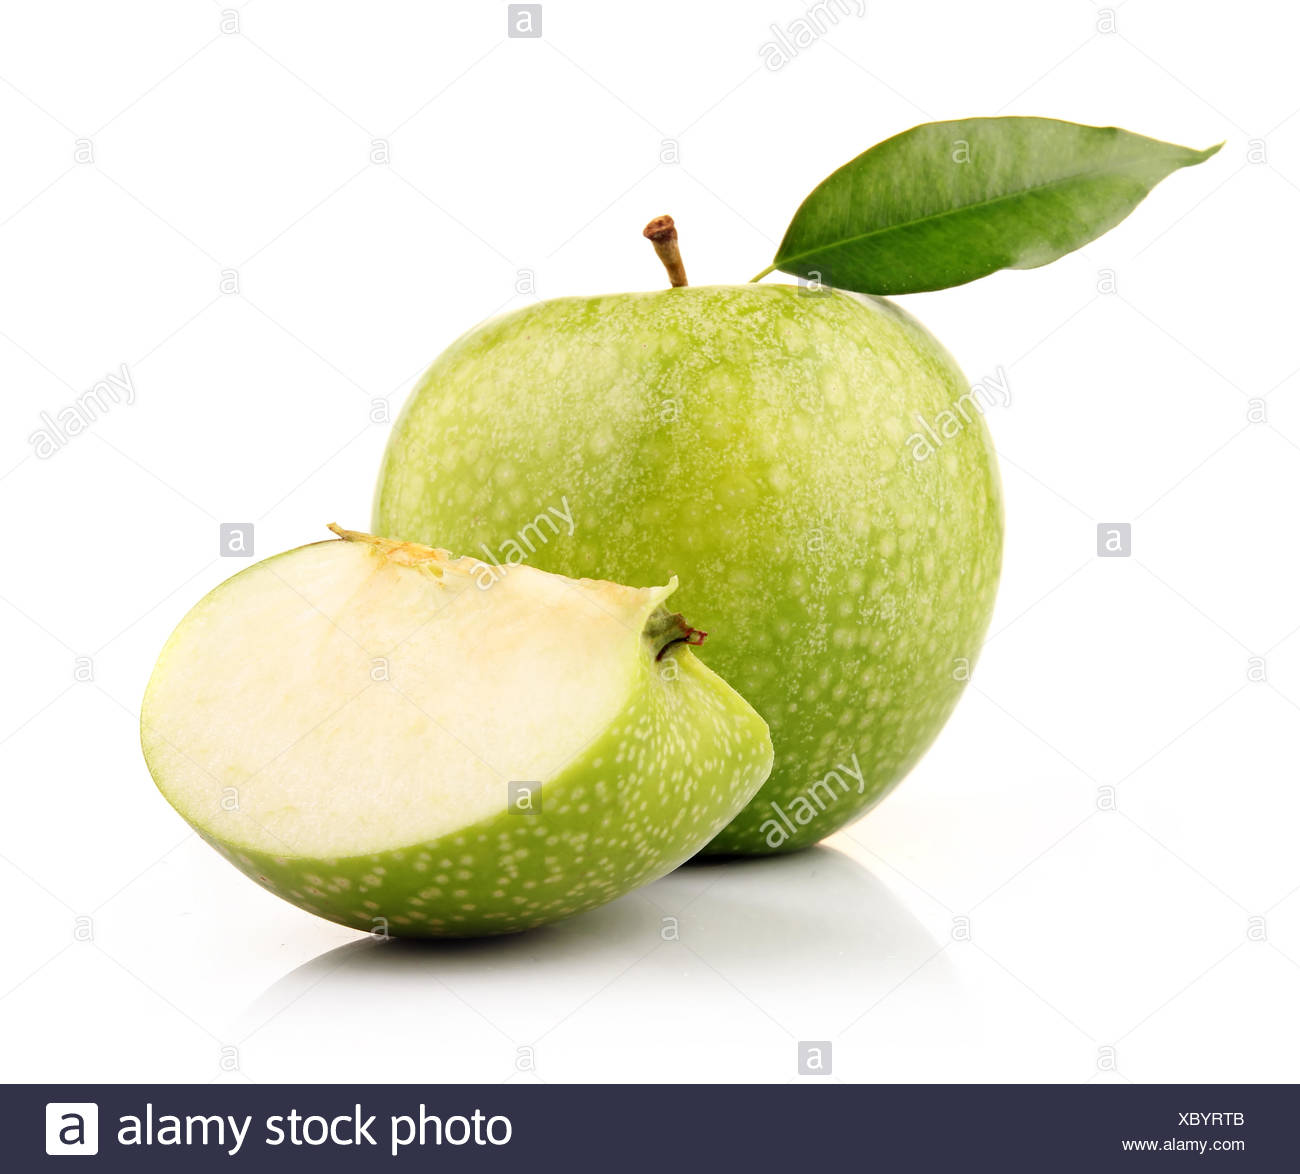 Ripe green apple with slices isolated - Stock Image